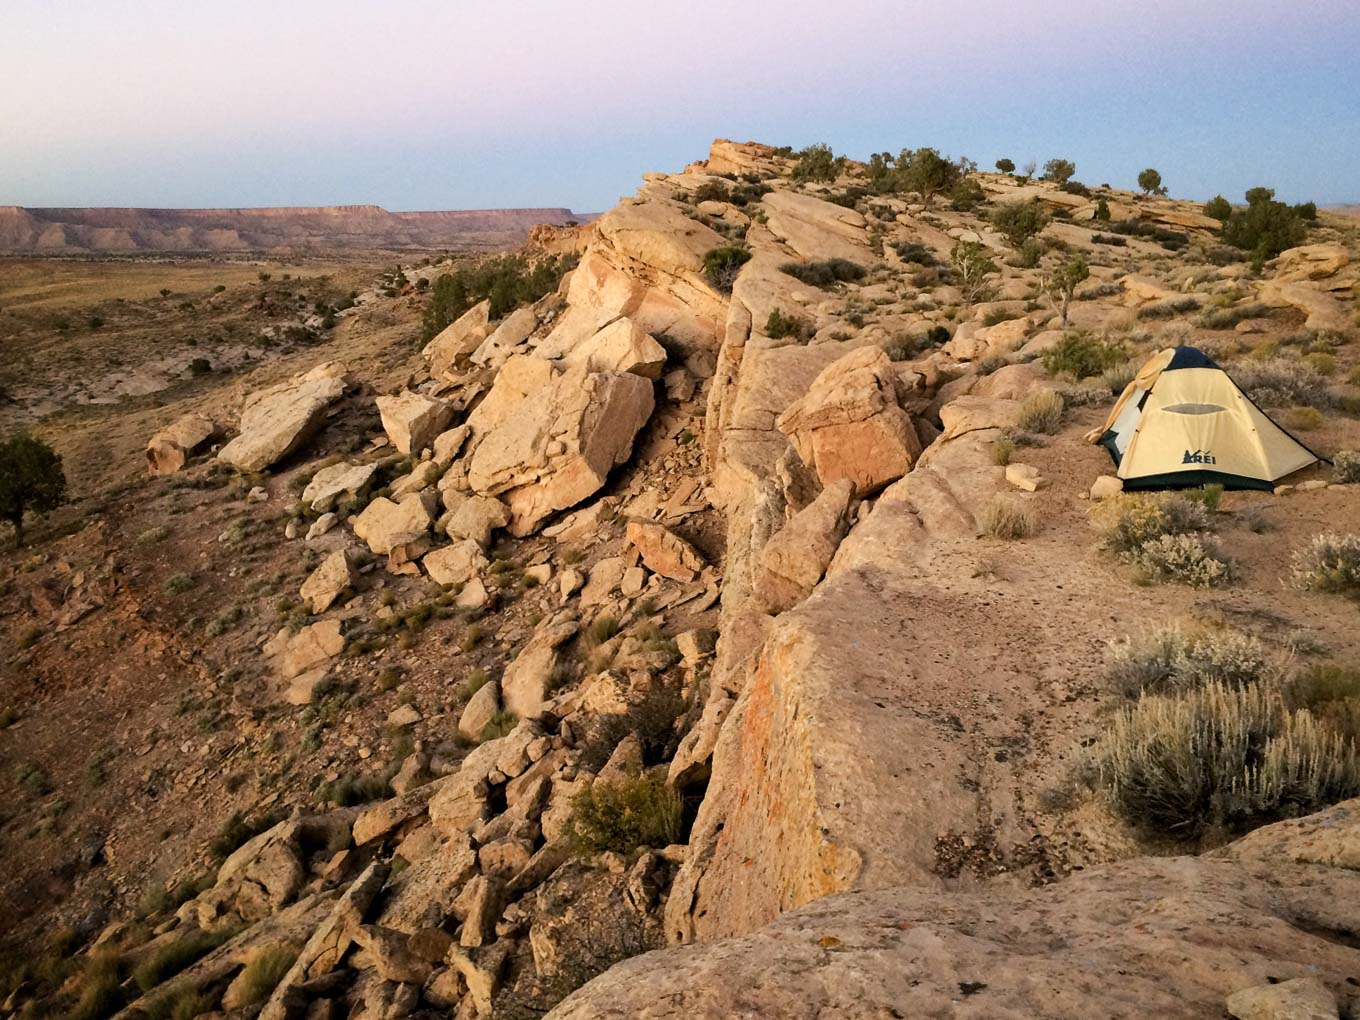 I like to pitch my tent on the edge of cliffs. Gives an added thrill to getting up in the middle of the night to pee.